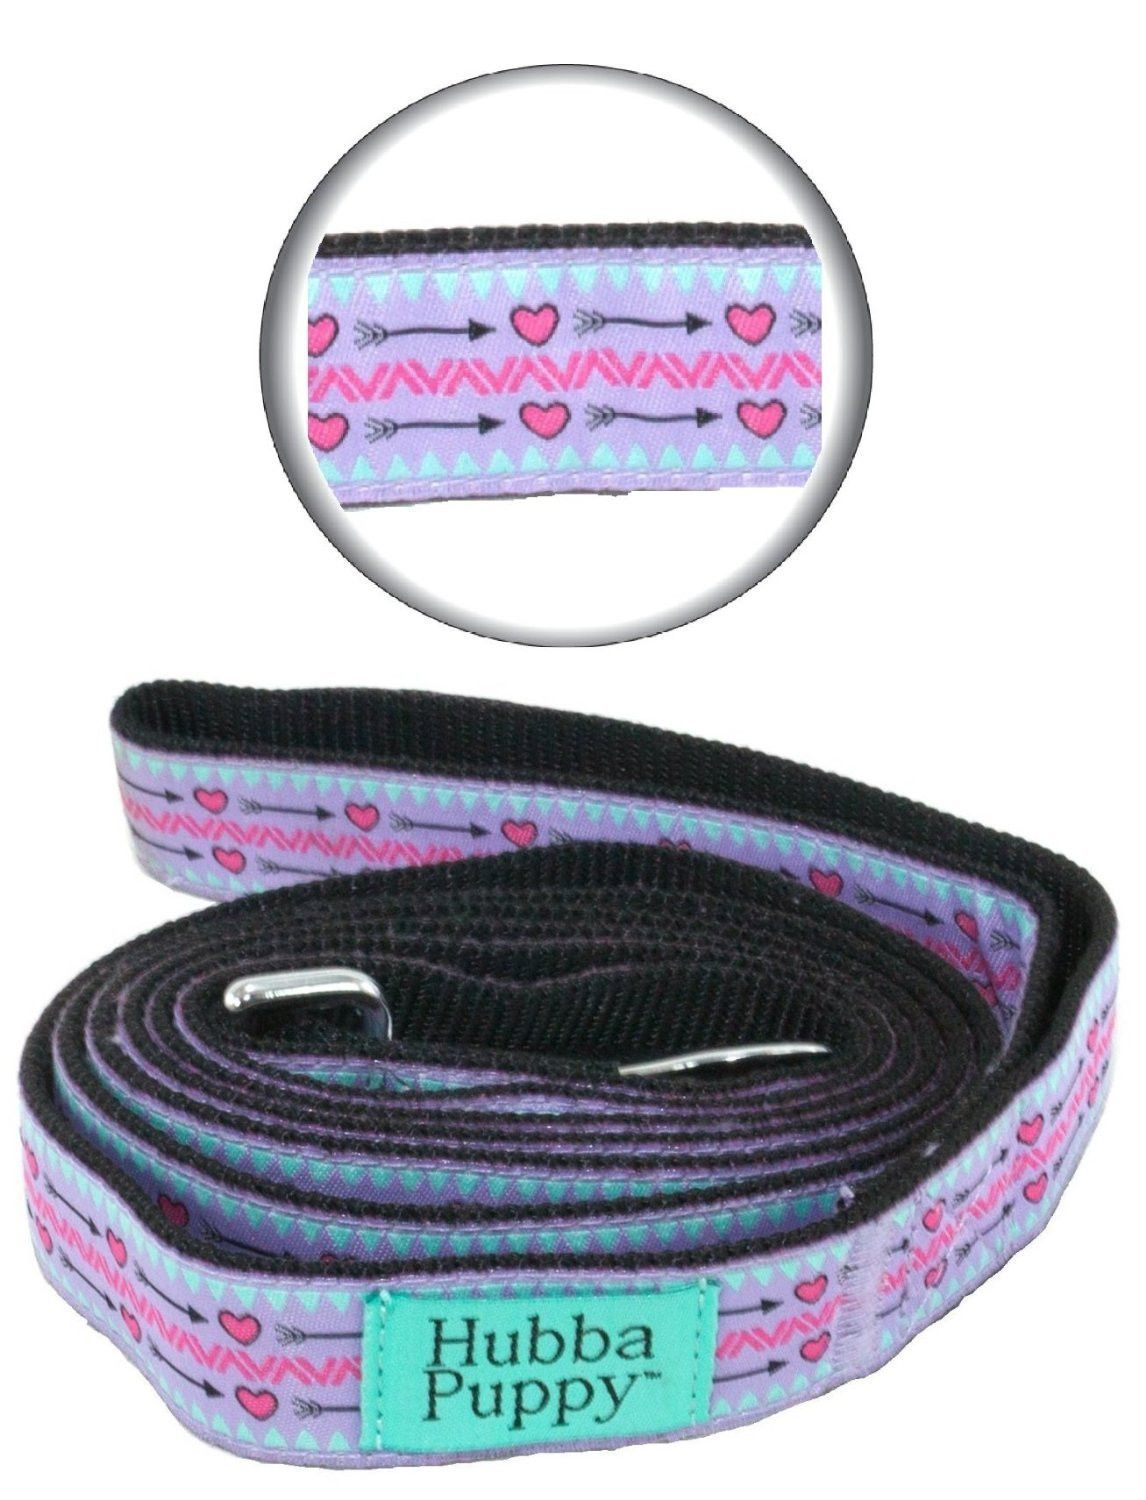 Hearts and Arrows Leash Purple Lilac and Hot Pink 6 ft Length